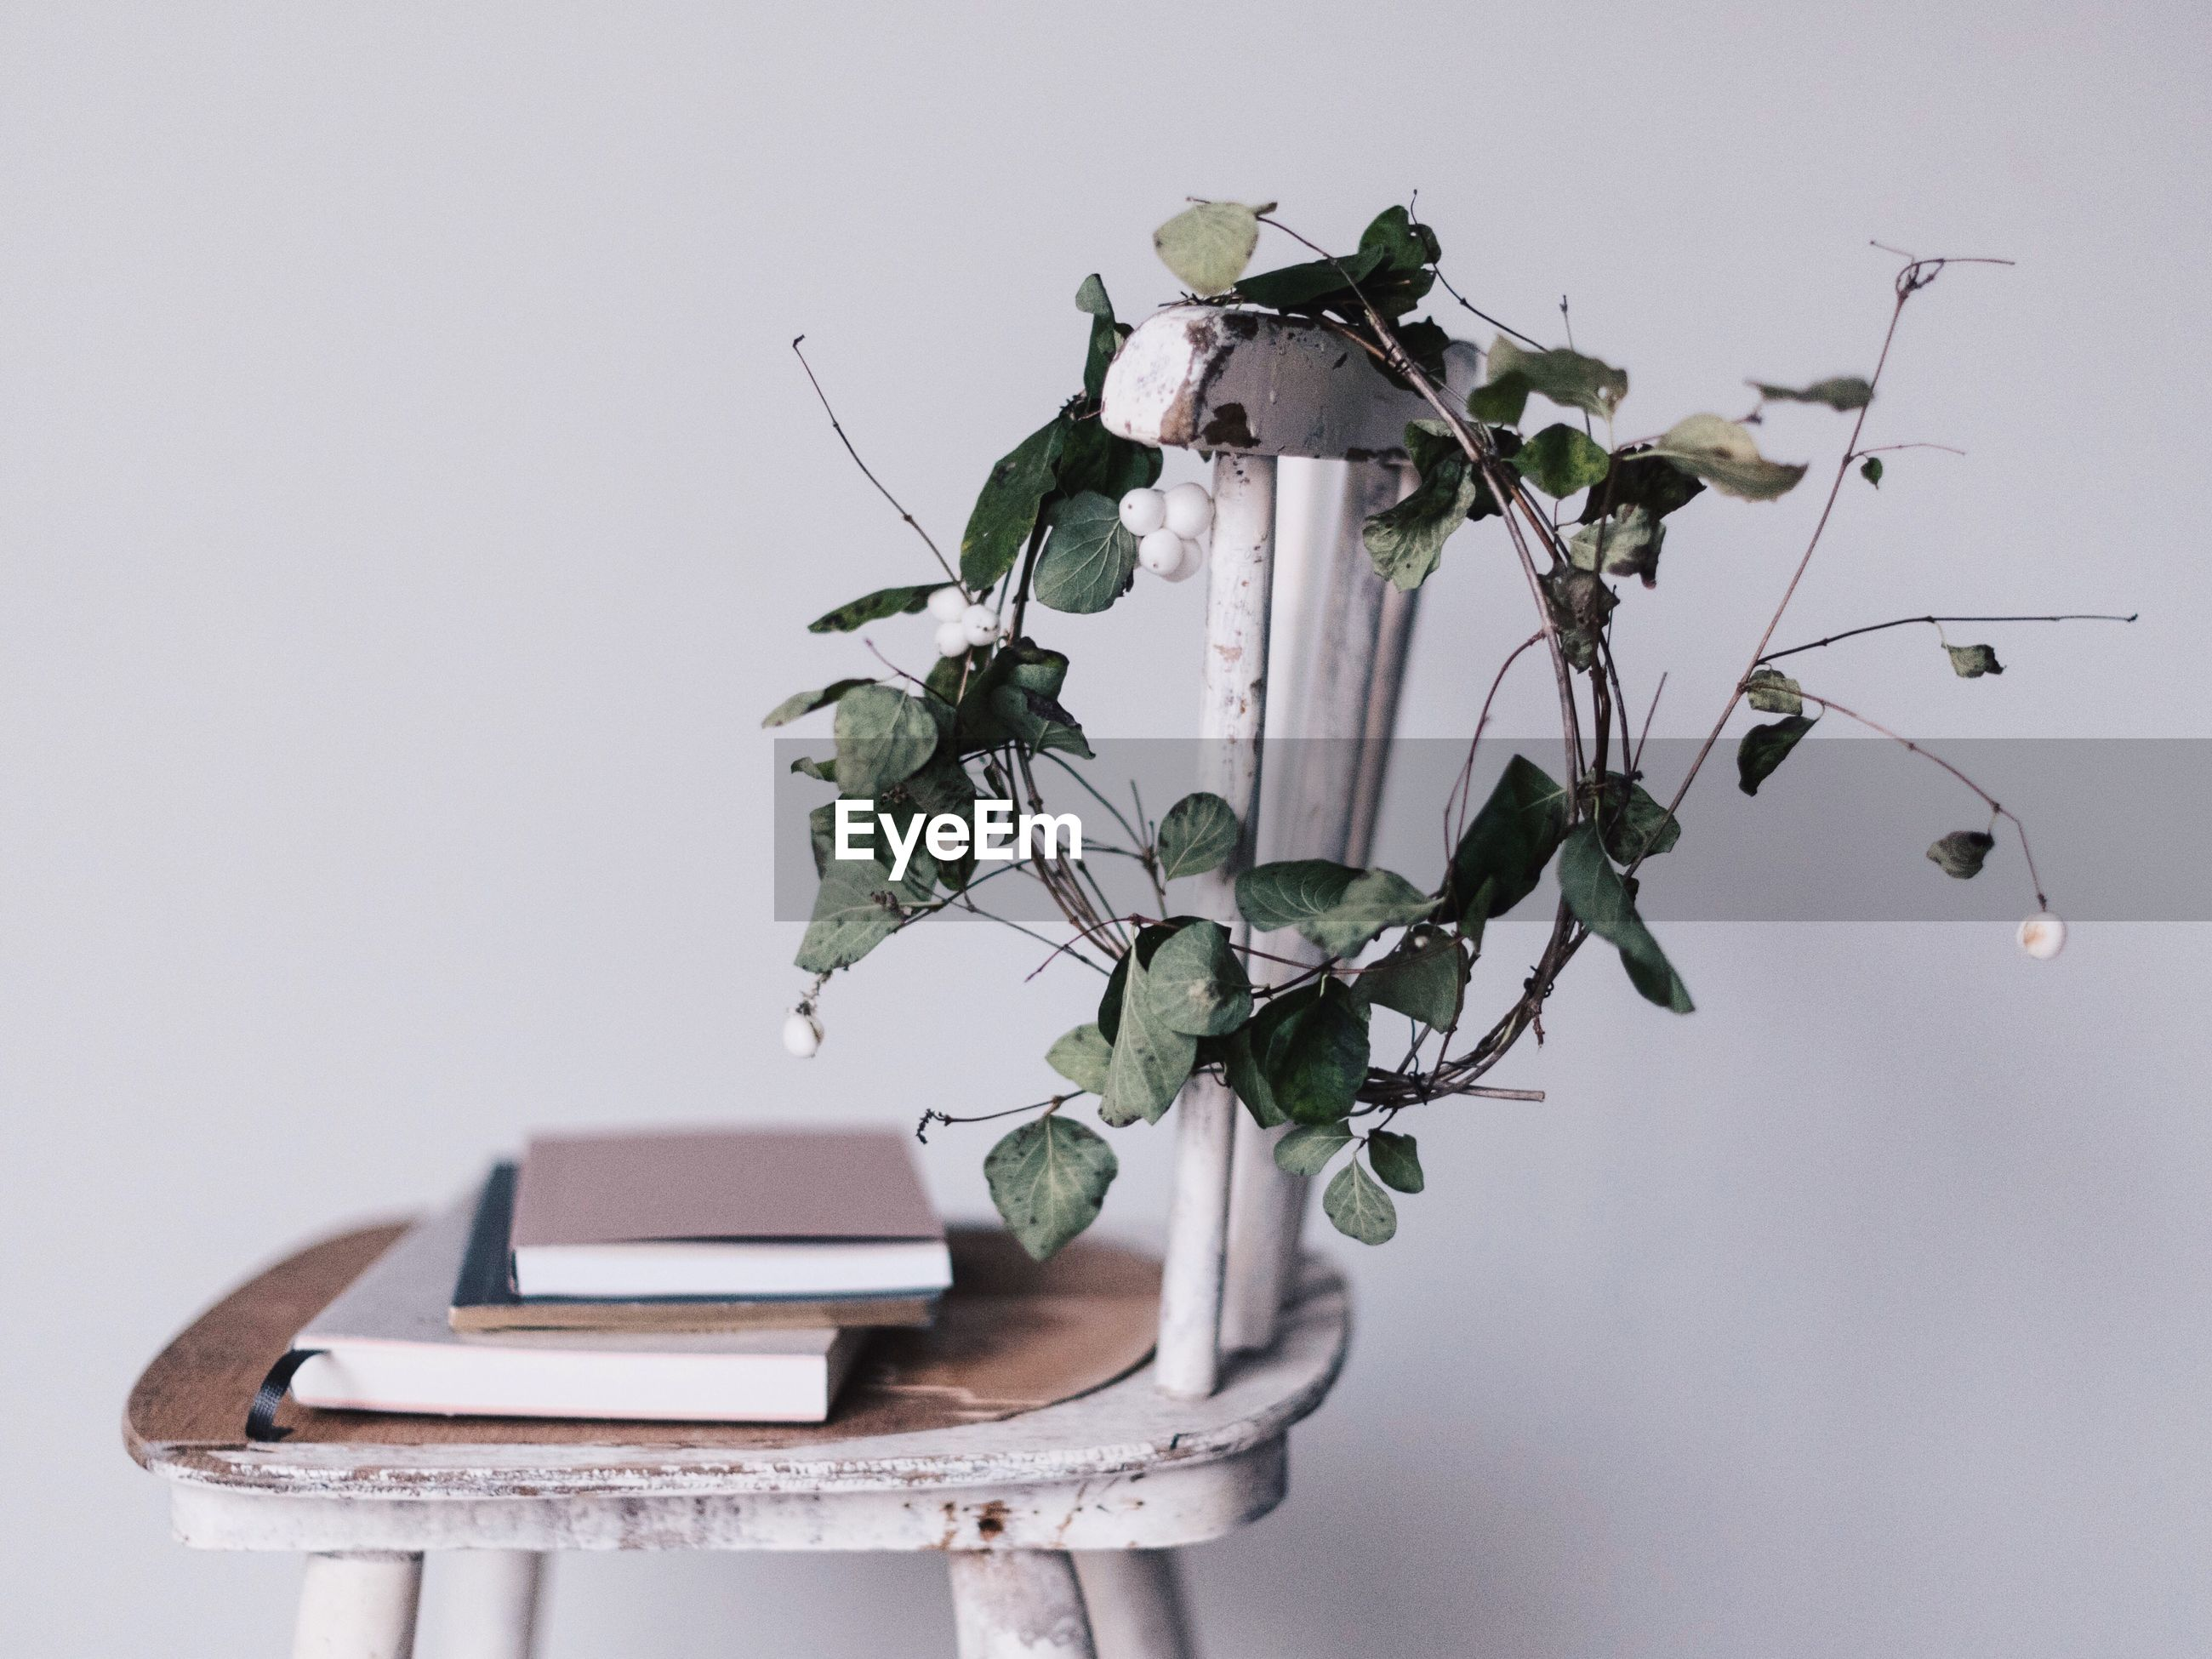 Wreath and books on chair against white wall